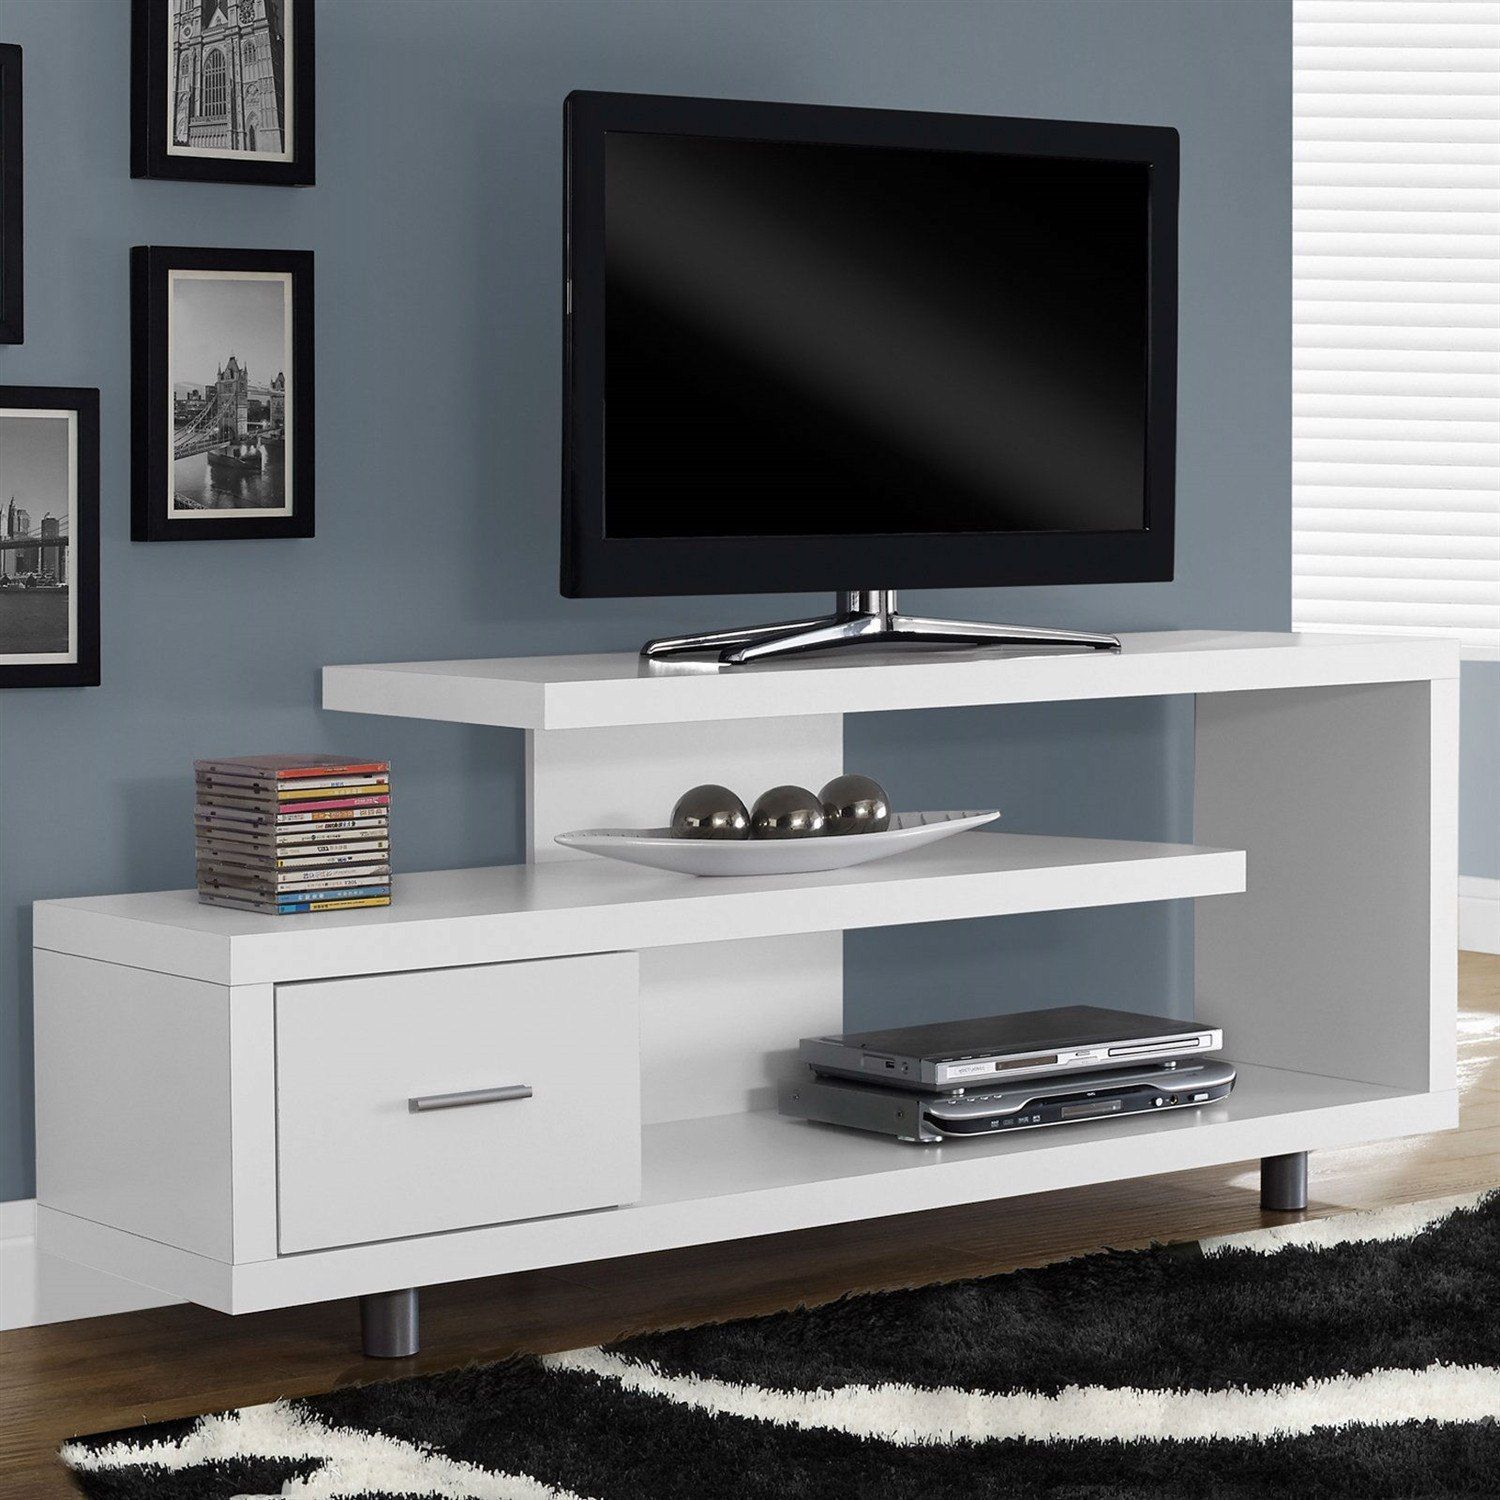 White Modern Tv Stand   Fits Up To 60 Inch Flat Screen Tv | Home Inside Laurent 70 Inch Tv Stands (Photo 4 of 30)